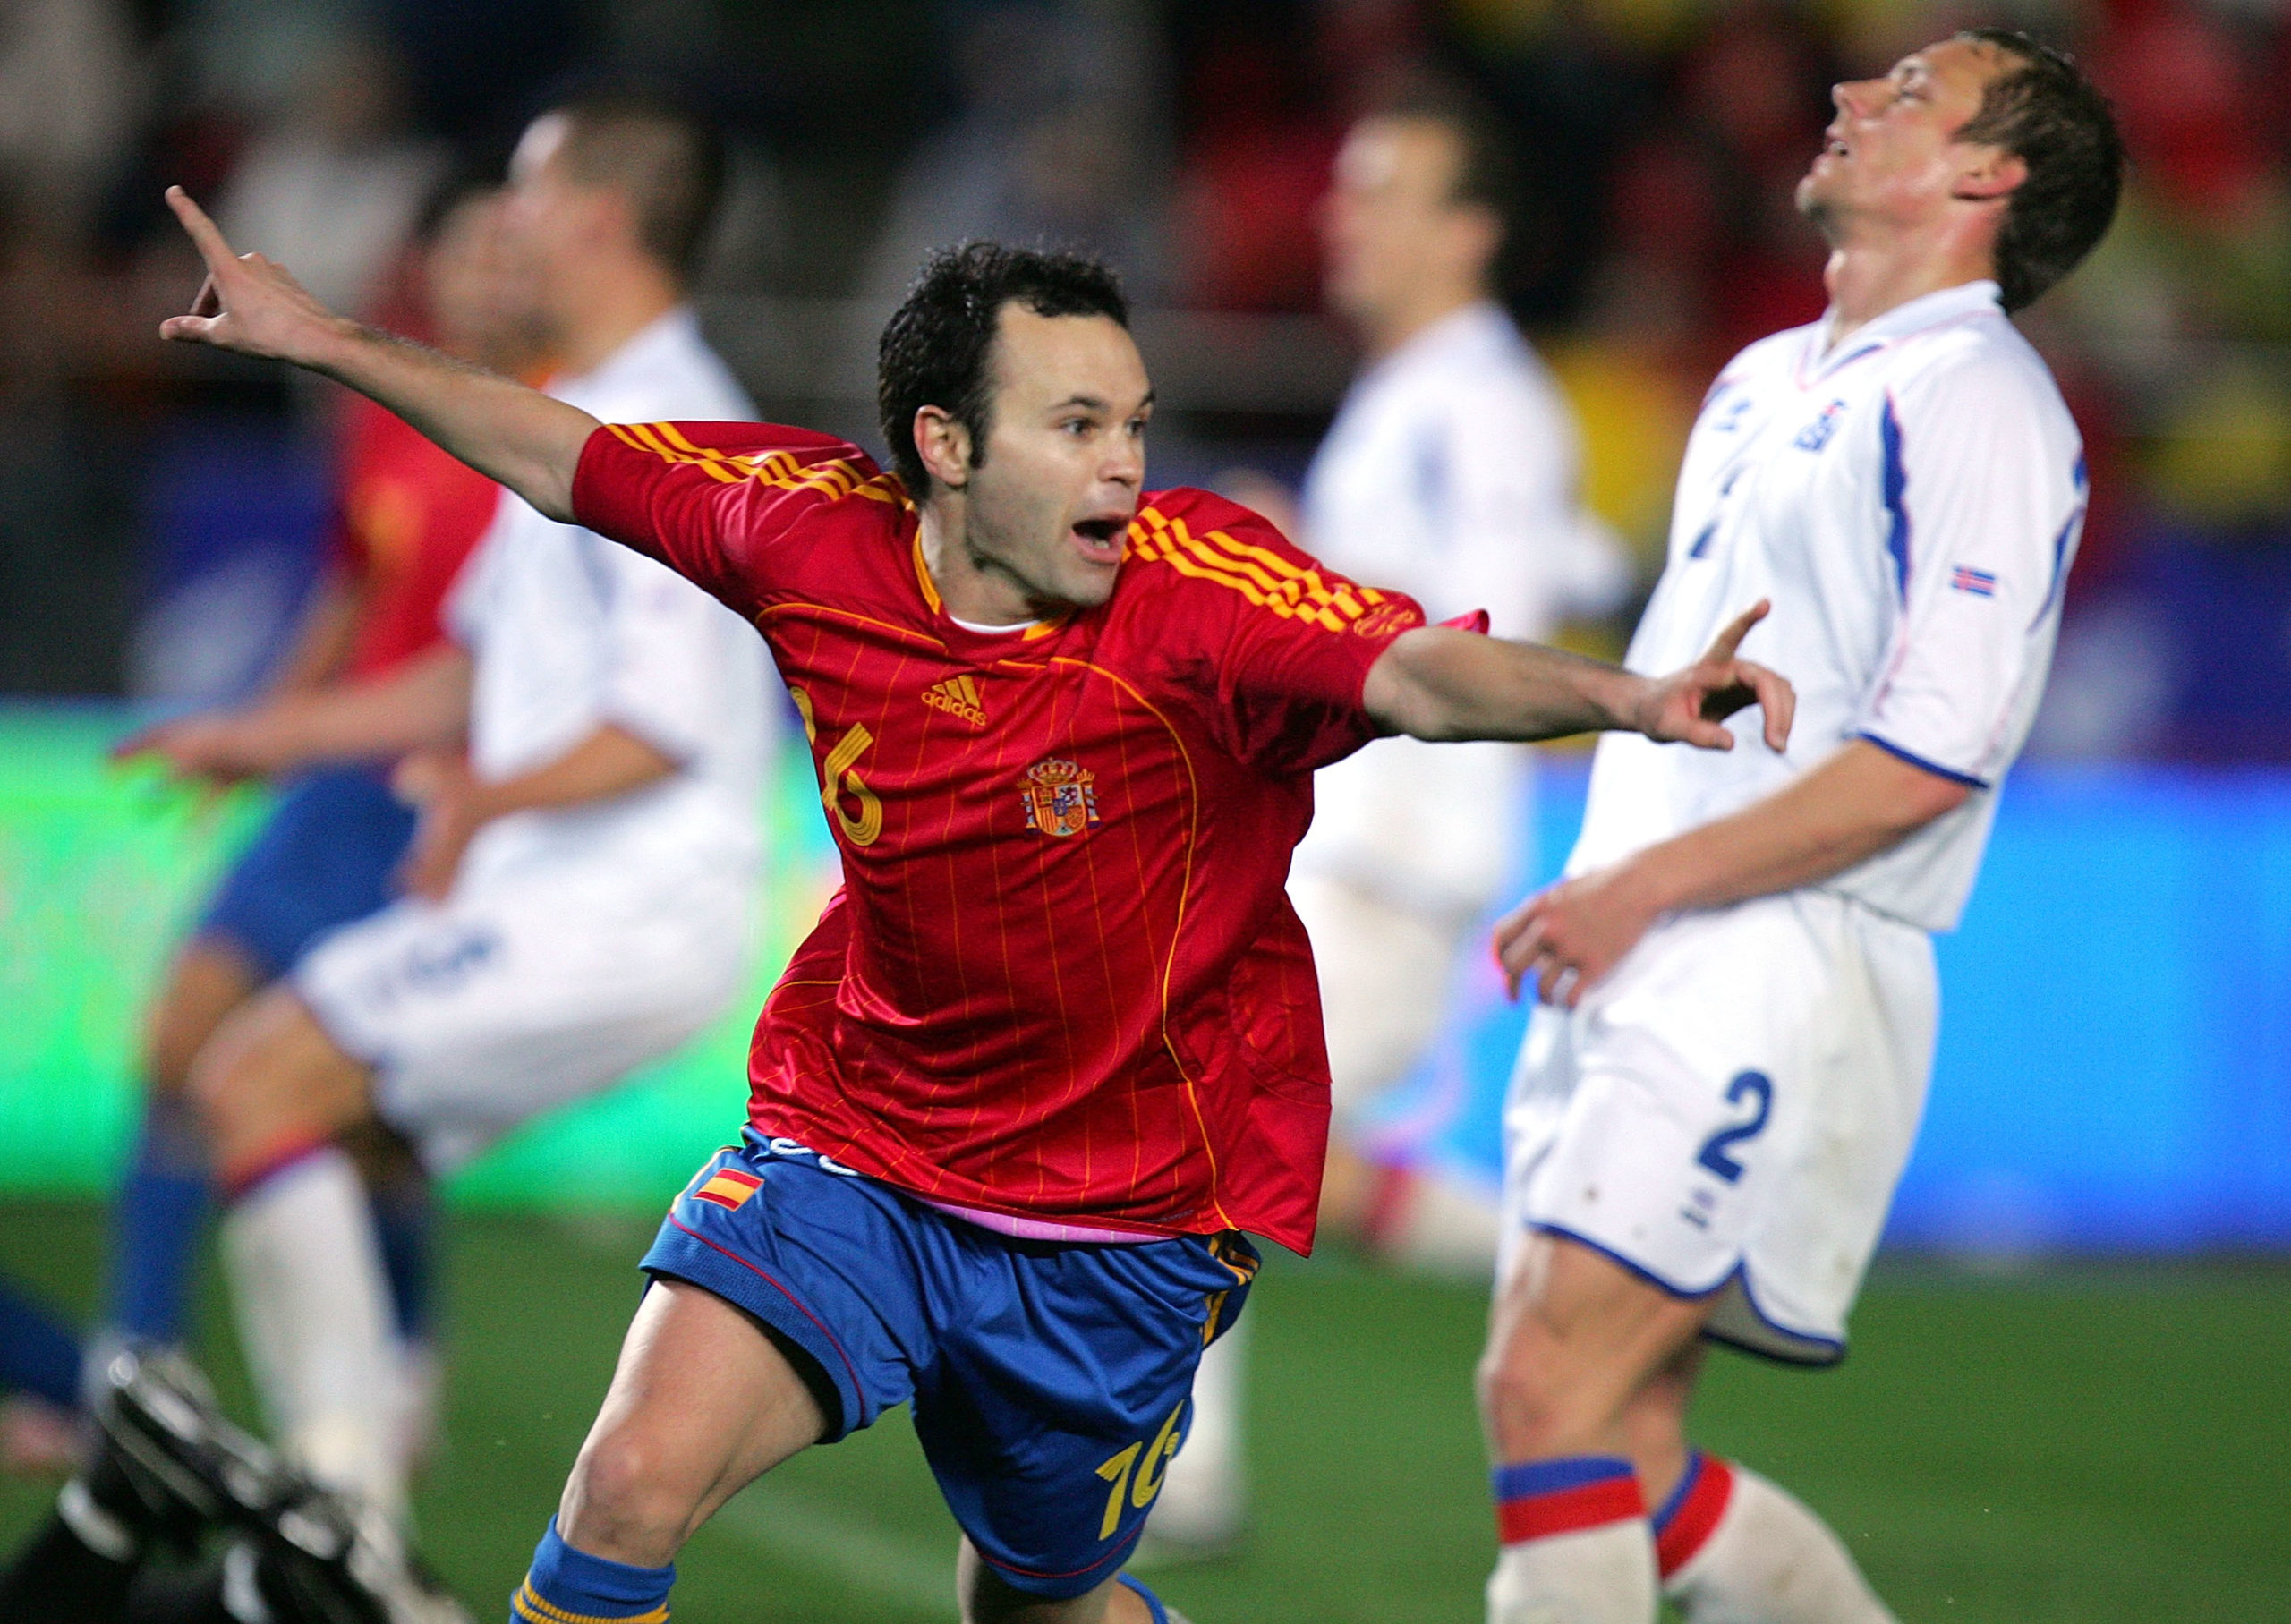 Andres Iniesta celebrating his goal at the 2008 Euros